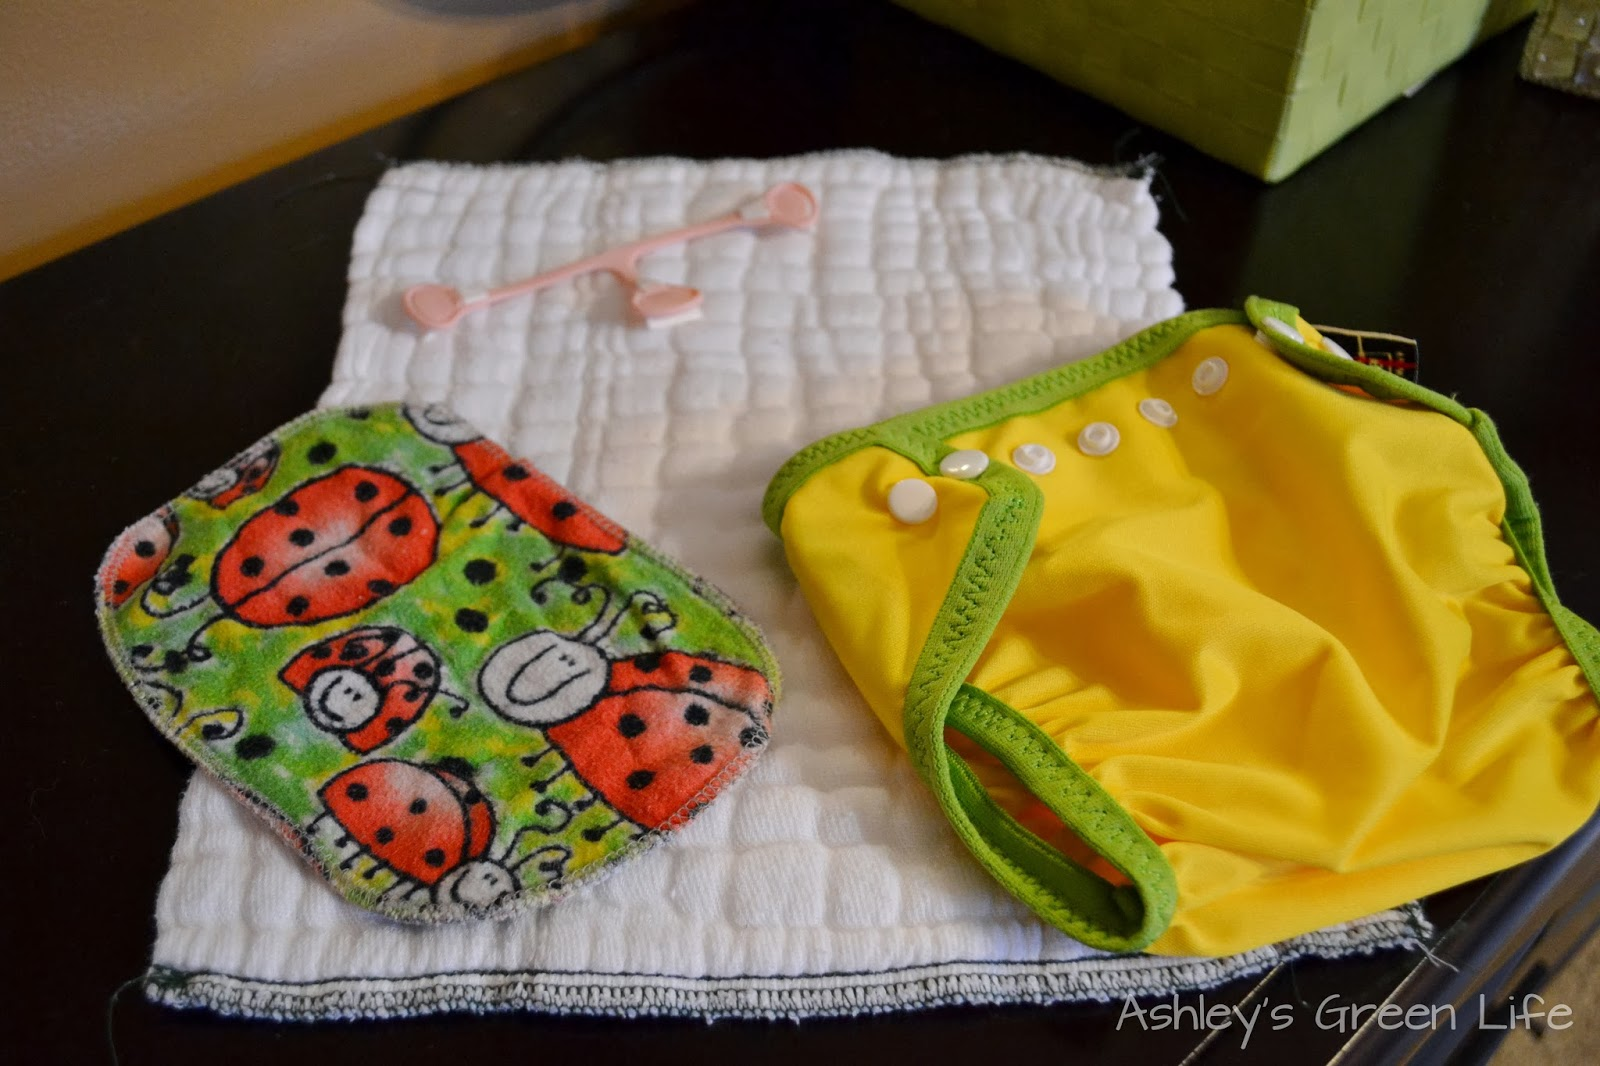 Ashley's Green Life: Ways to Go Green During Postpartum ...